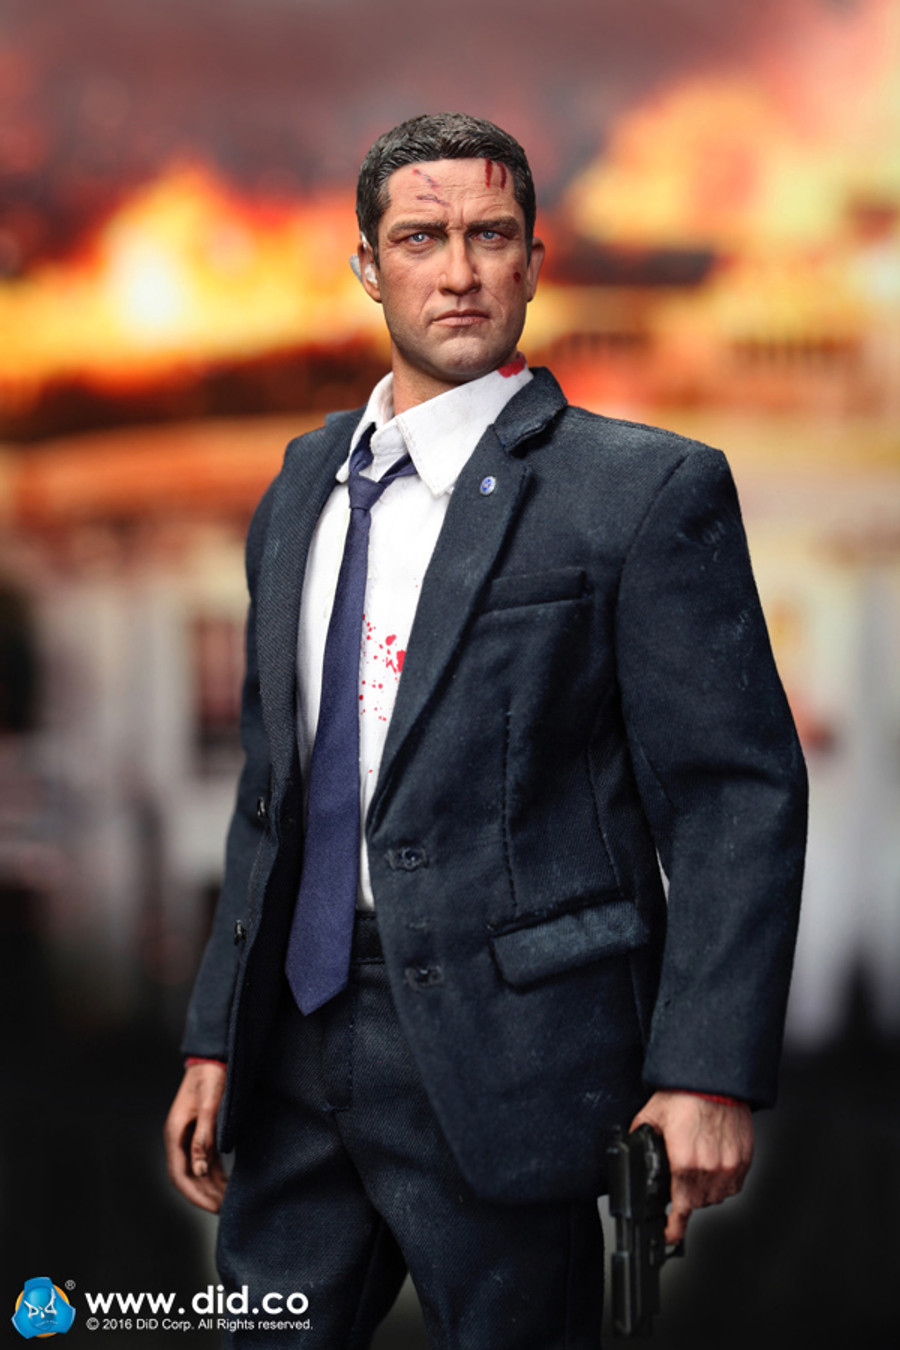 DID - US Secret Service Special Agent Special Edition - Mark